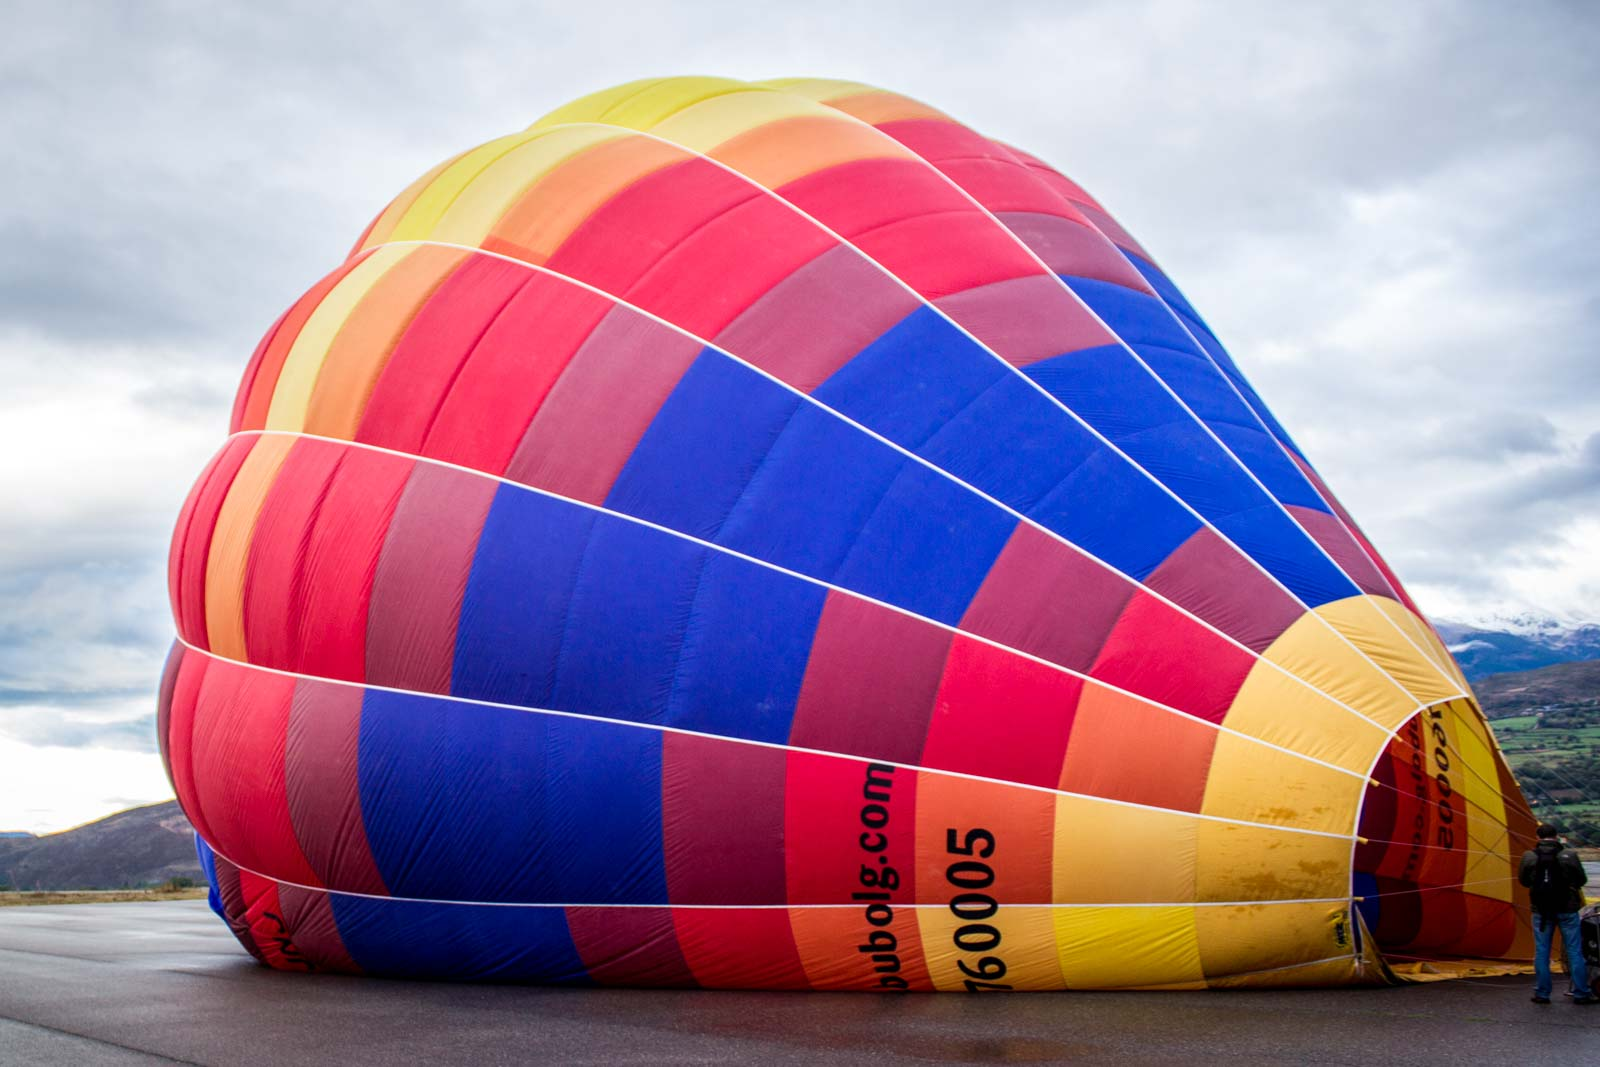 Hot air ballooning in the Pyrenees in Spain